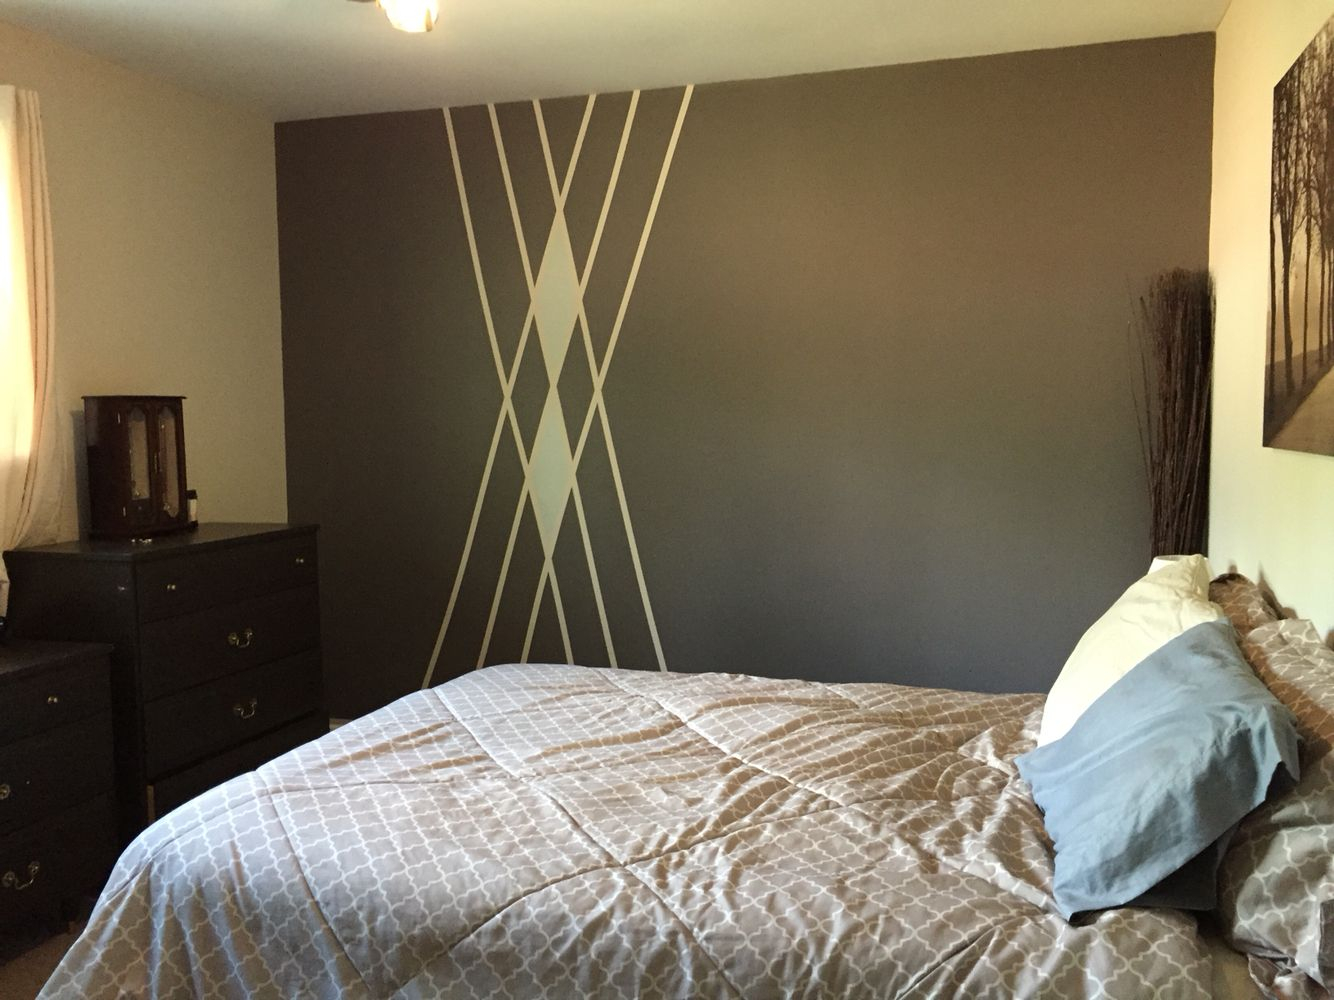 Painted wall with pattern design. Triangles or diamonds ...